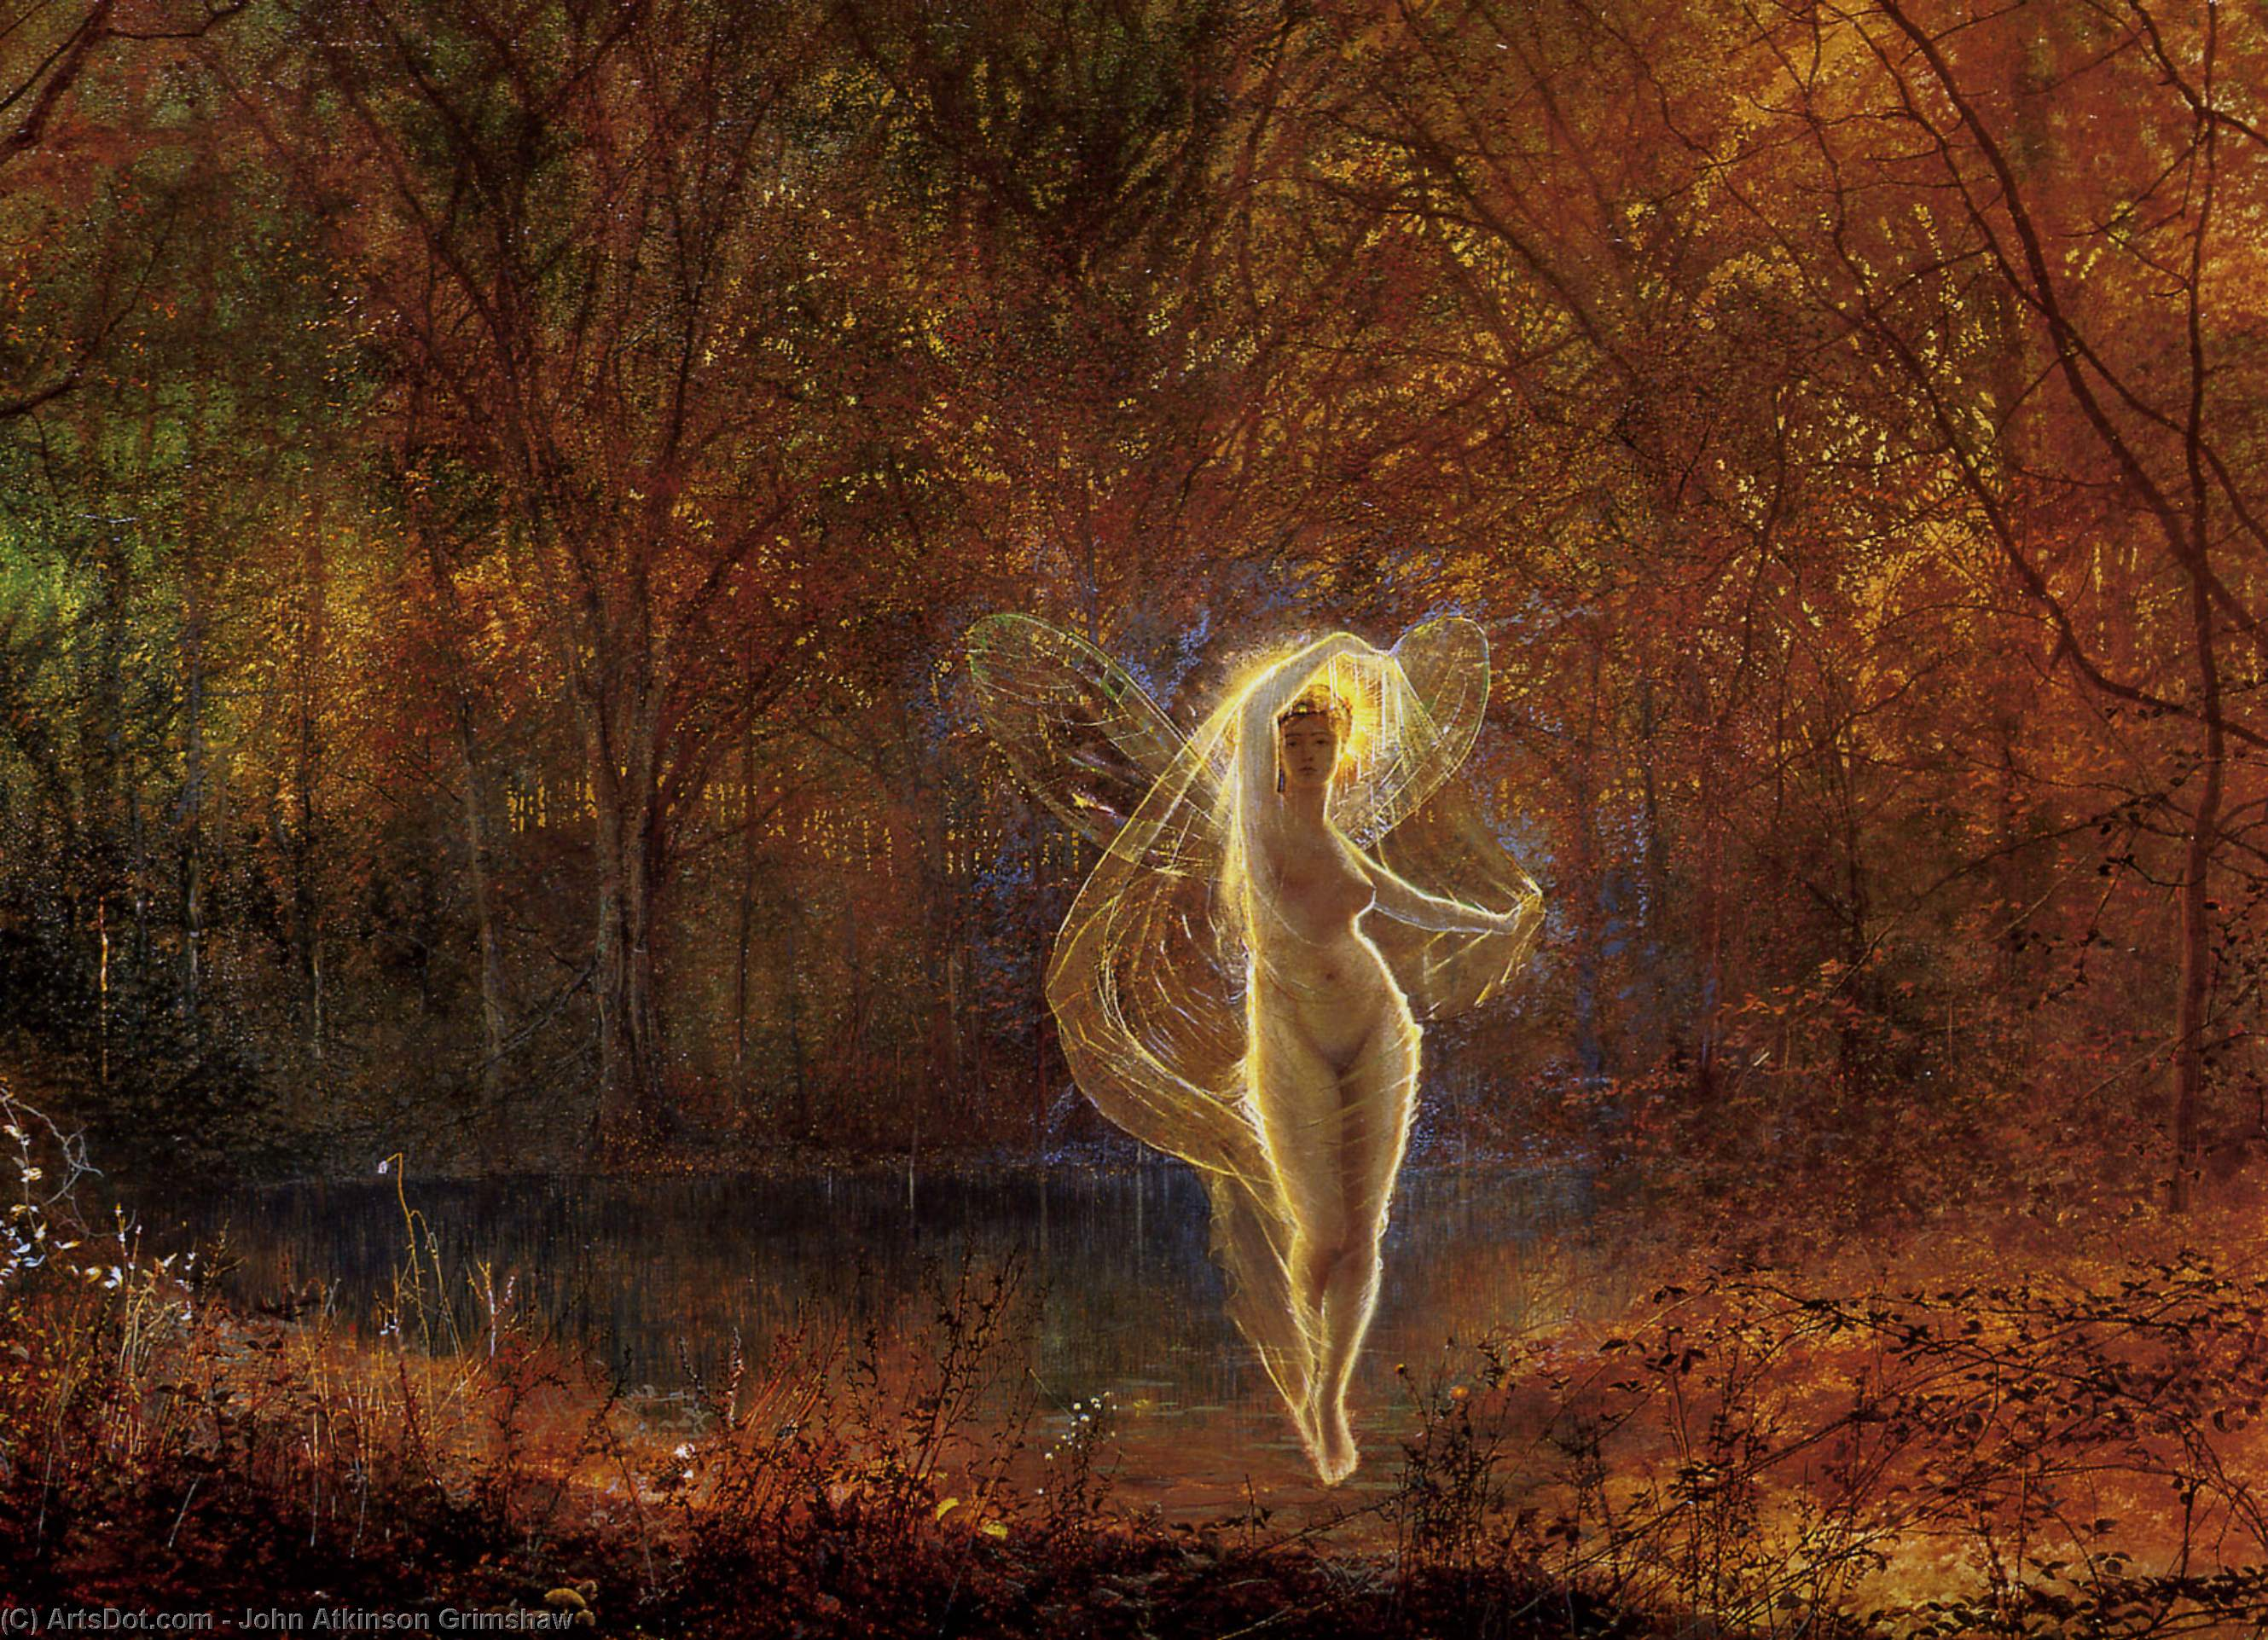 Dame Autumn hath a mournful face, Oil On Canvas by John Atkinson Grimshaw (1836-1893, United Kingdom)